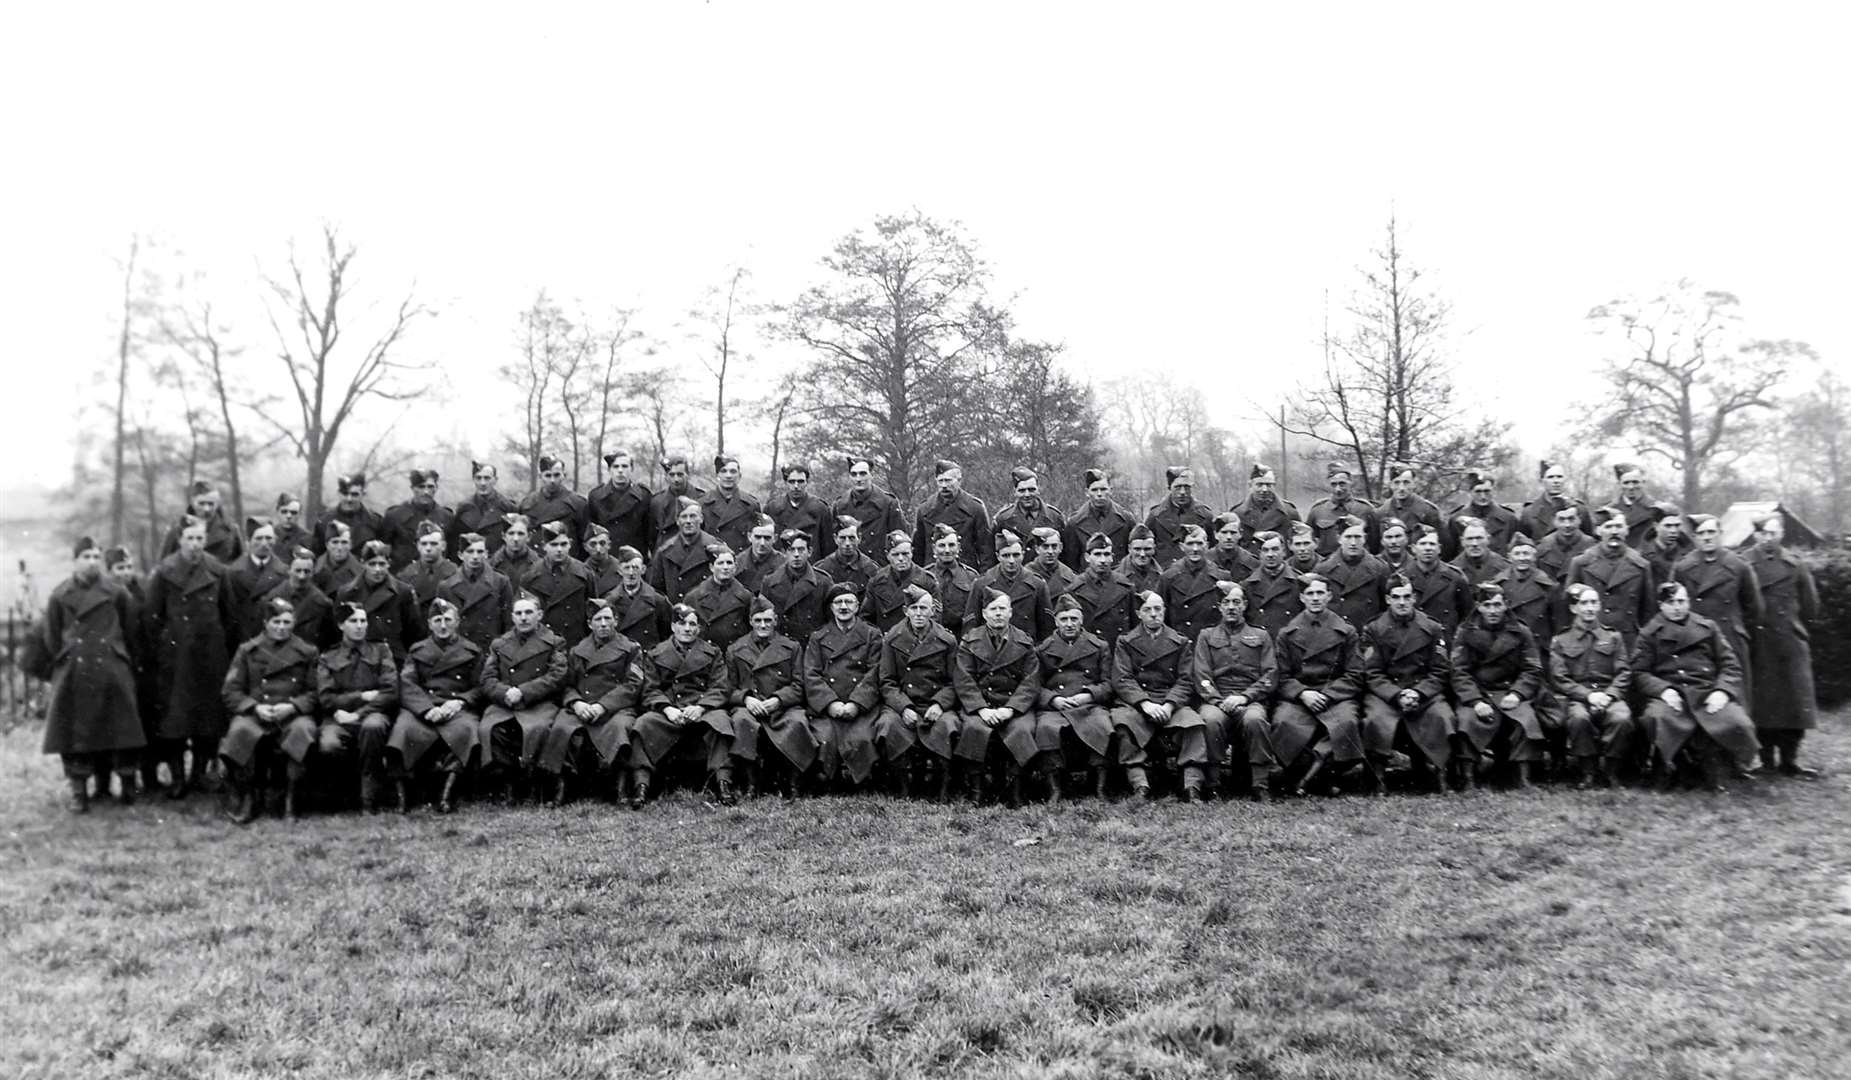 Hoxne Home Guard had around 100 members when it disbanded in 1944. Picture: Hoxne Heritage Group.